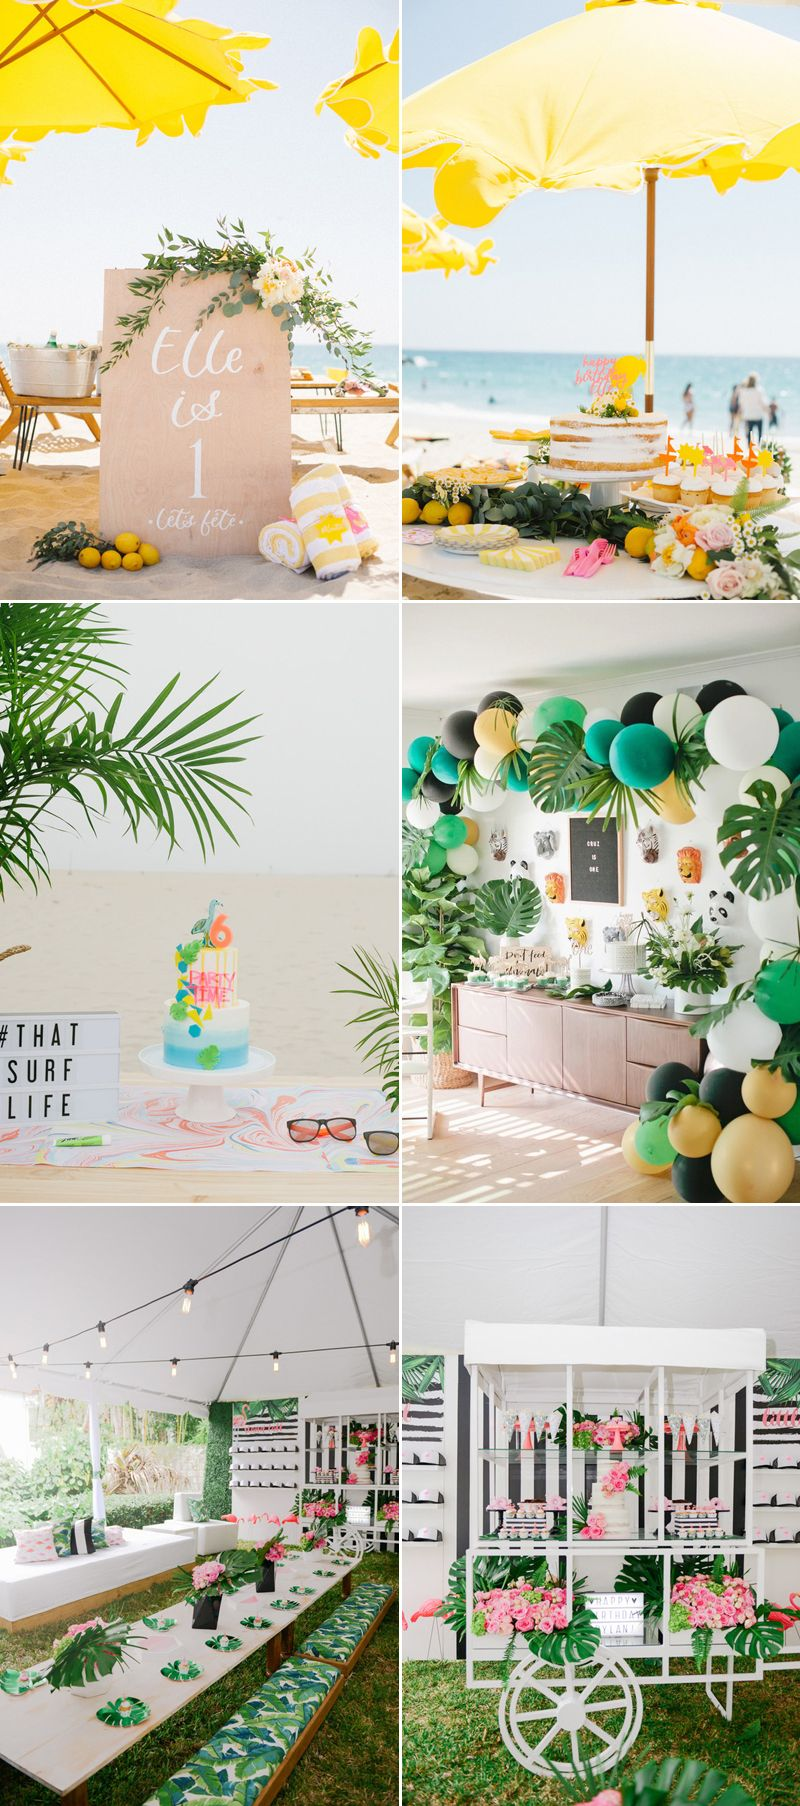 5 Fun Birthday Party Themes Your Kids Will Love! | party ideas ...